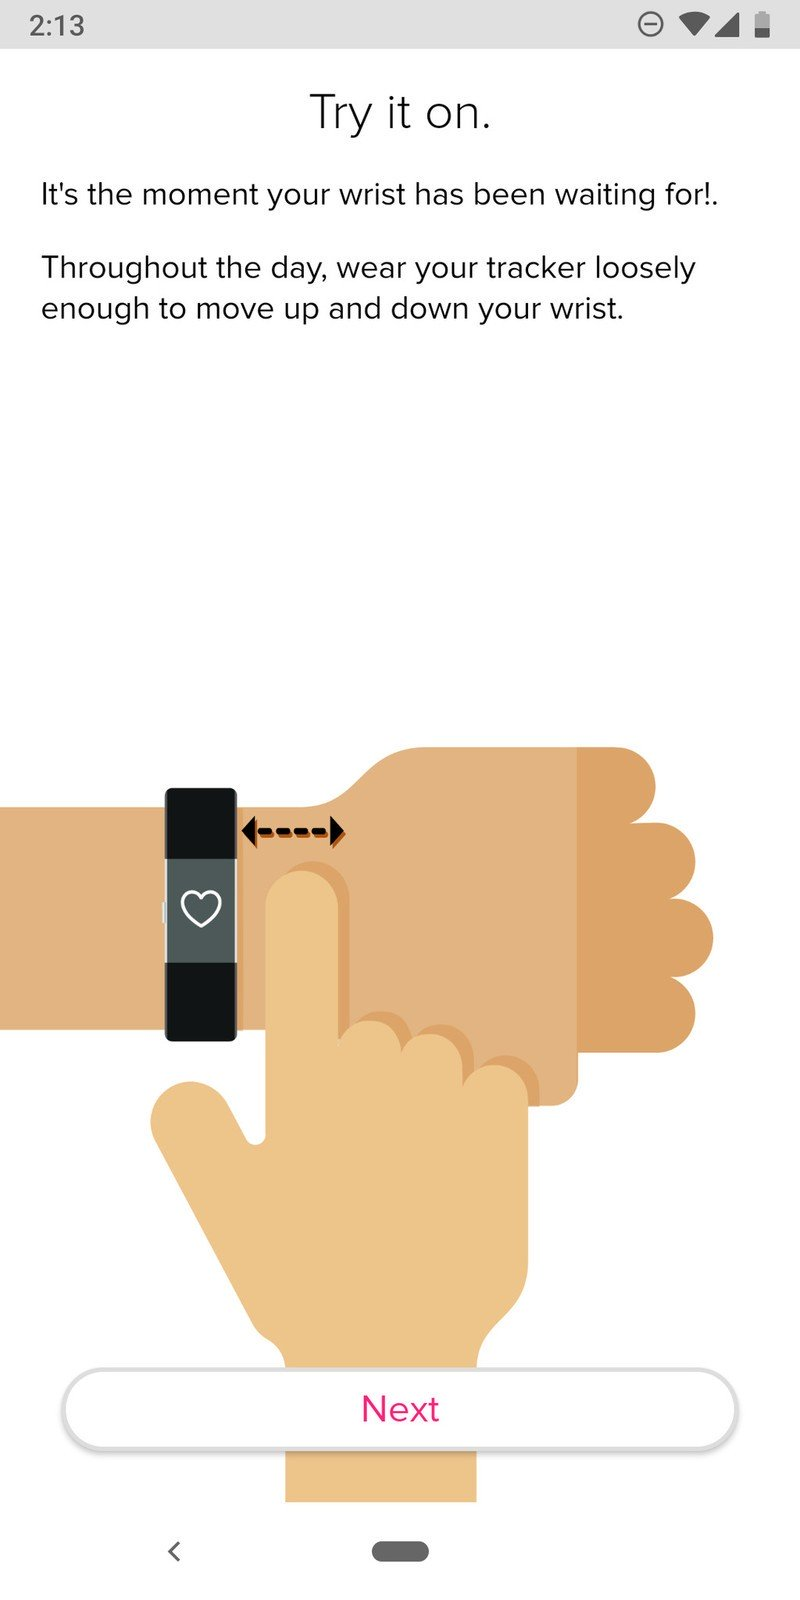 how-to-set-up-fitbit-charge-3-23.jpg?ito